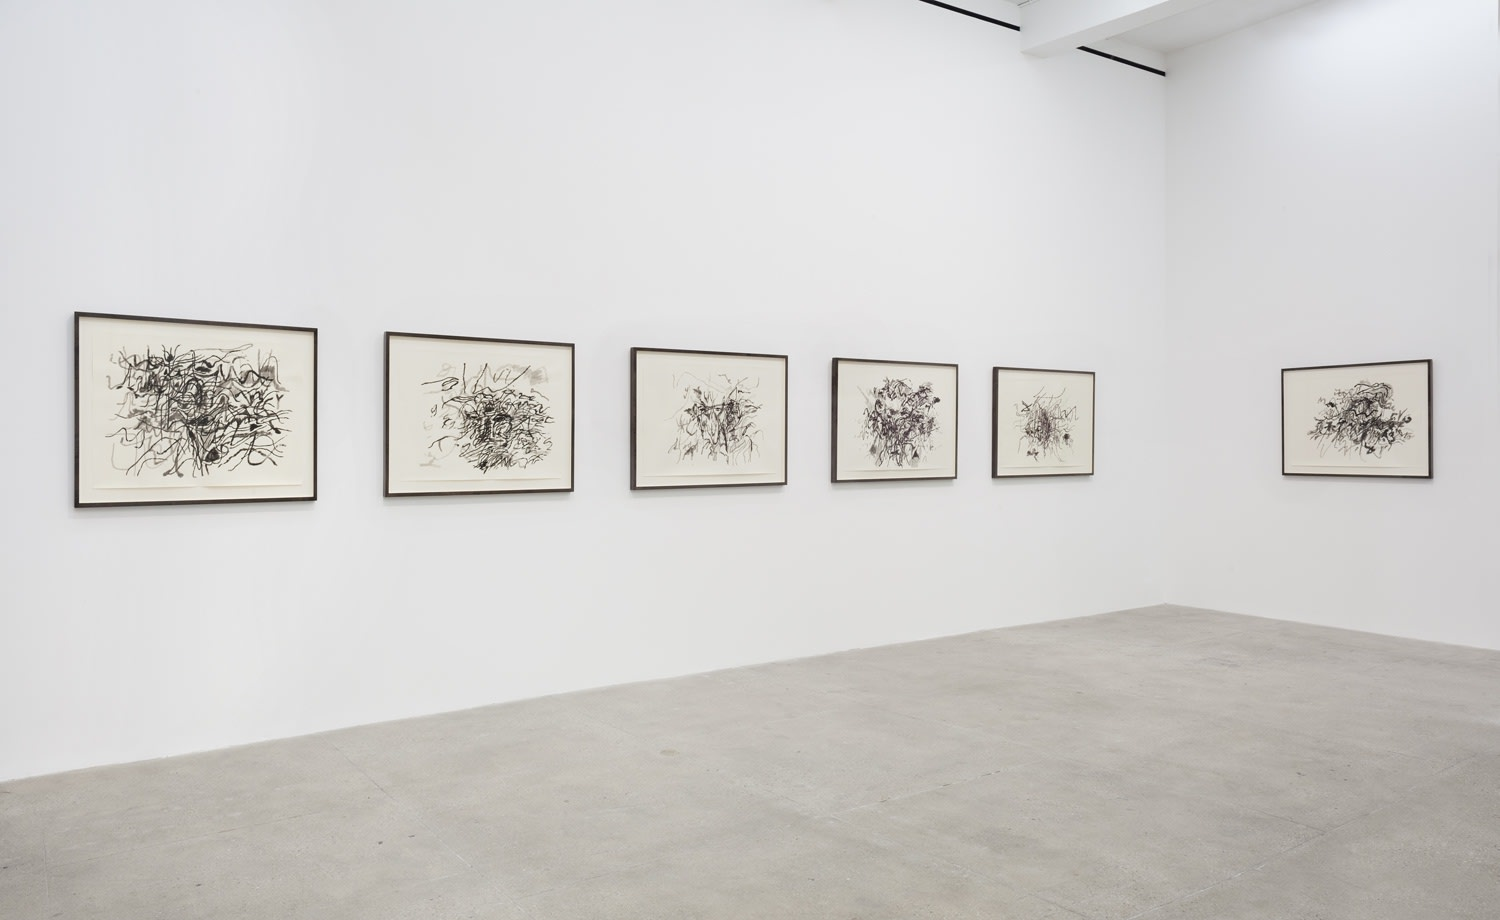 6 framed black and white abstract drawings hang on white gallery walls.